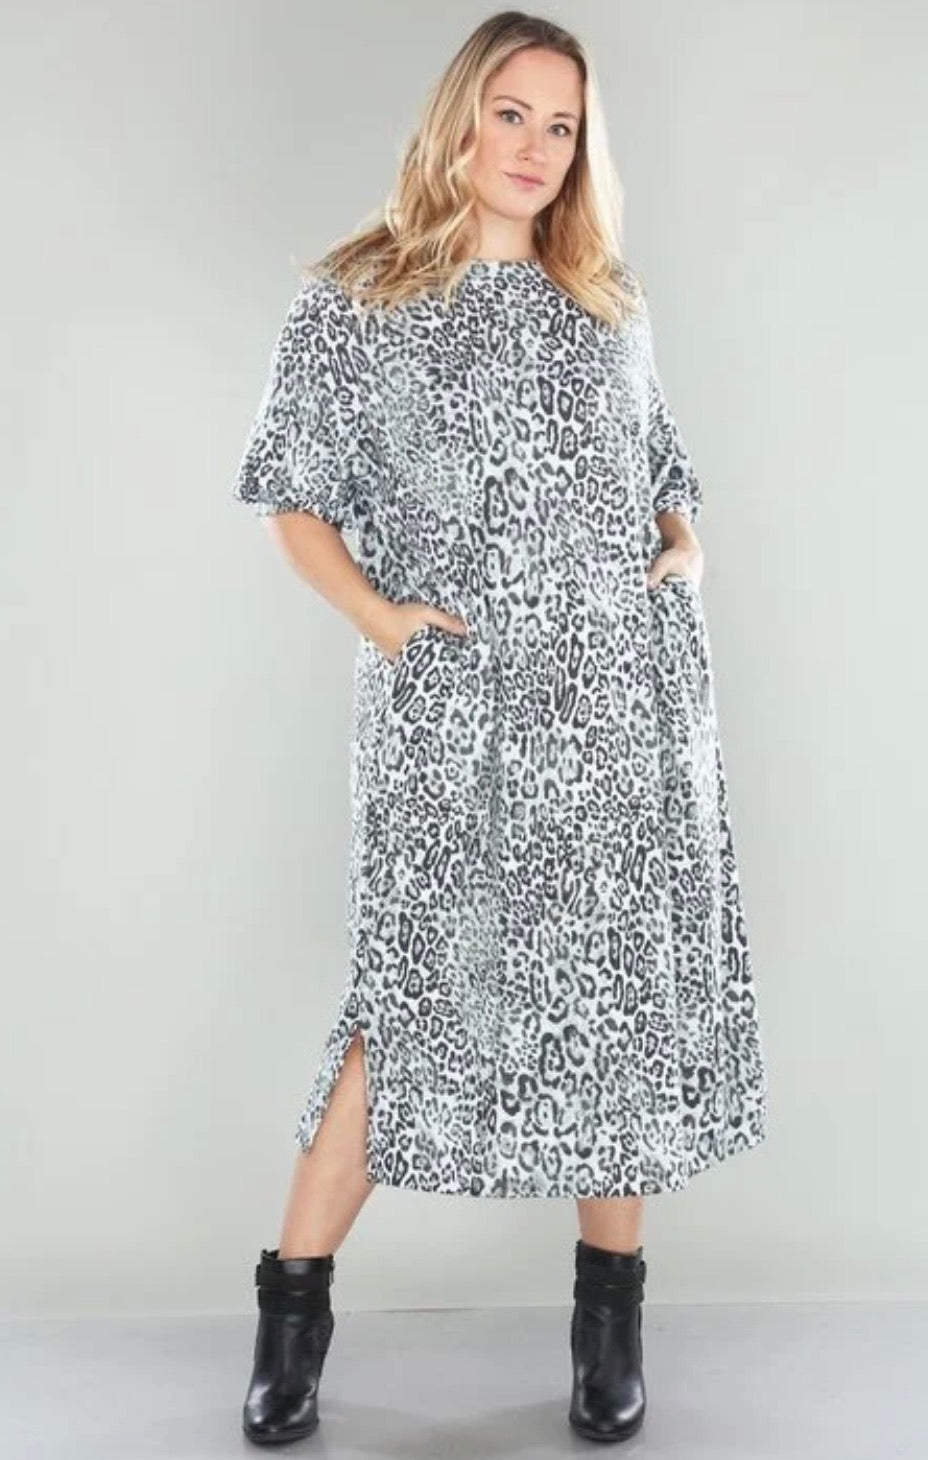 Plus Heather Leopard Dress